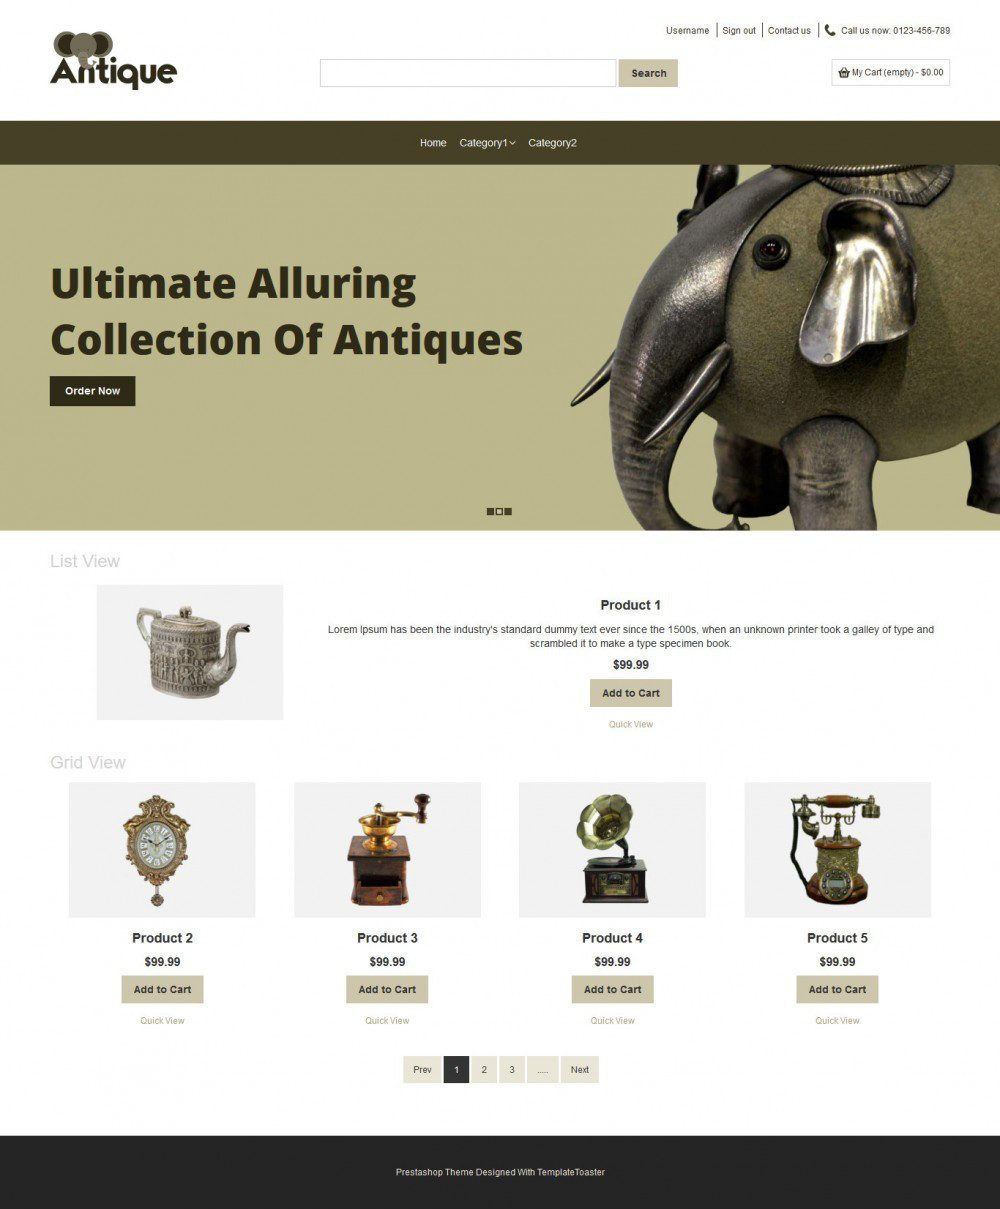 Antique - Antique Products PrestaShop Theme